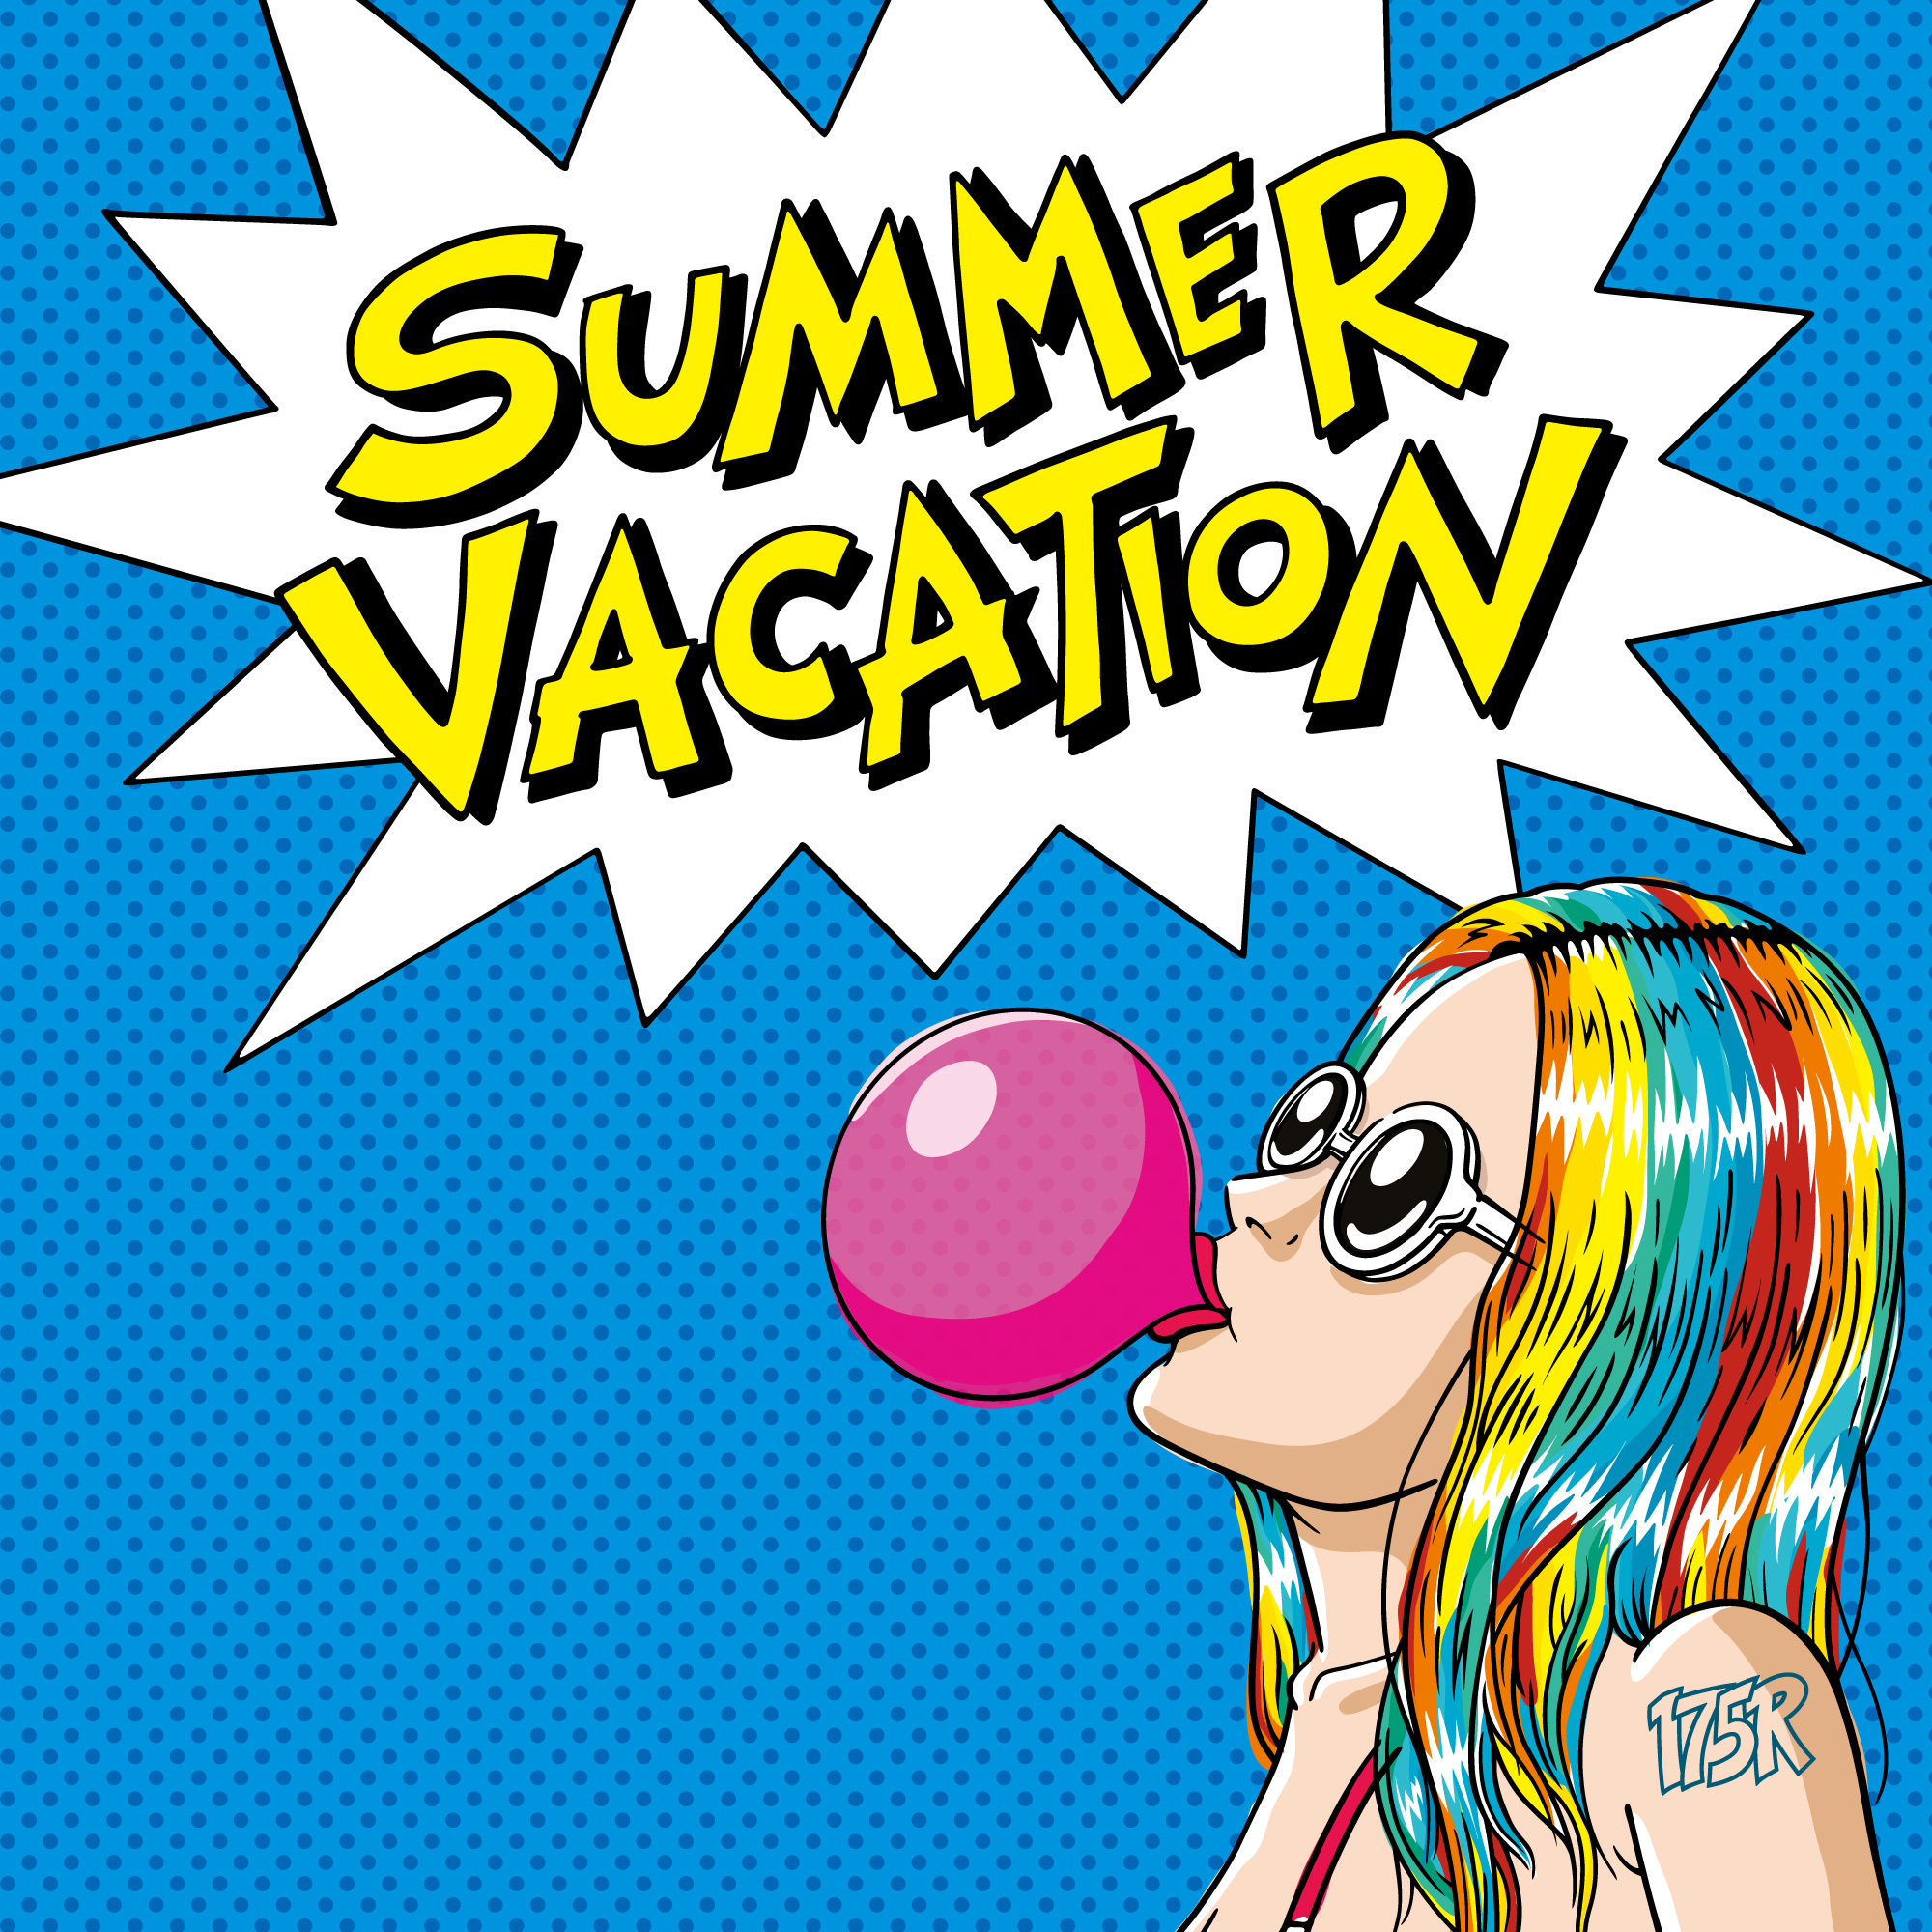 175R「SUMMER VACATION」ジャケット